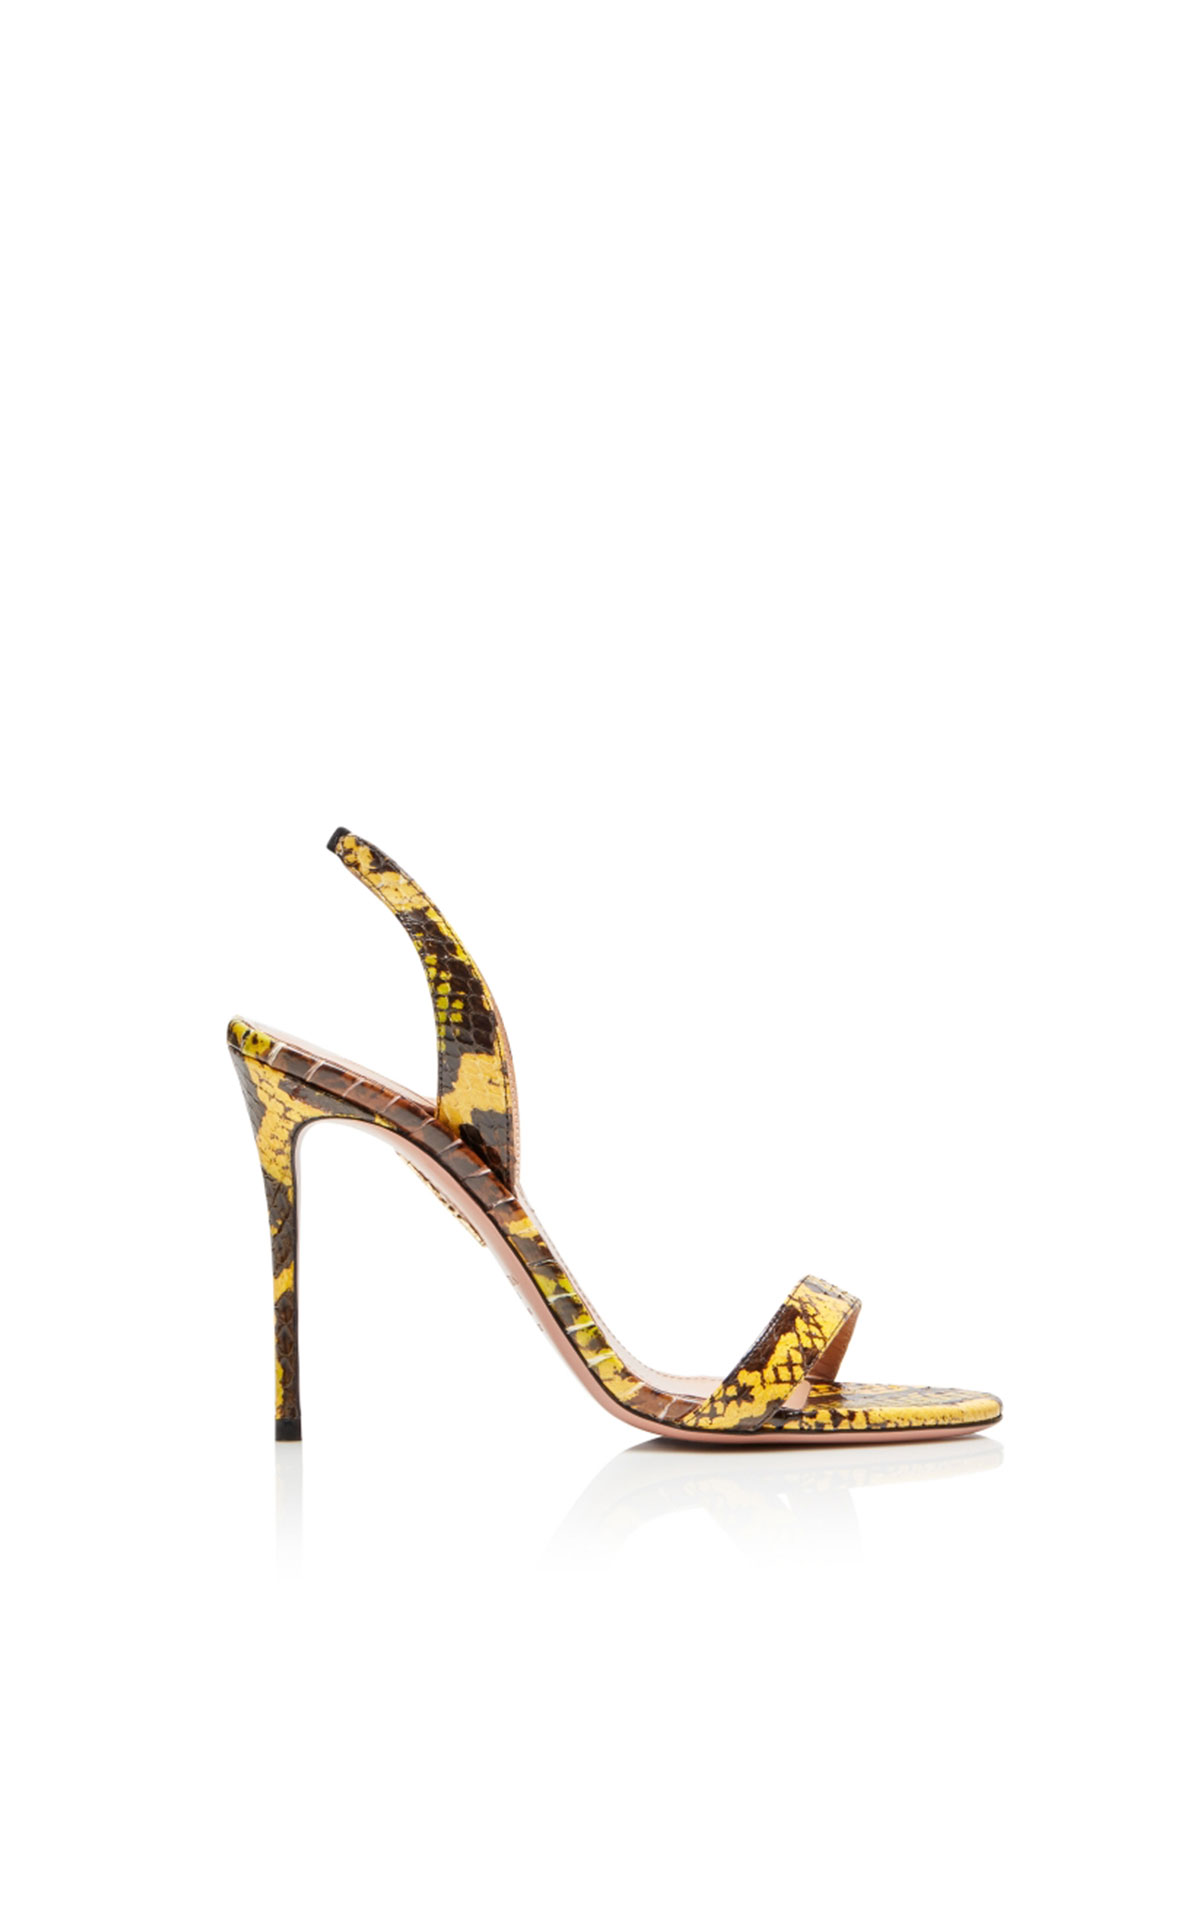 Aquazzura So nude sandal 105 yellow from Bicester Village